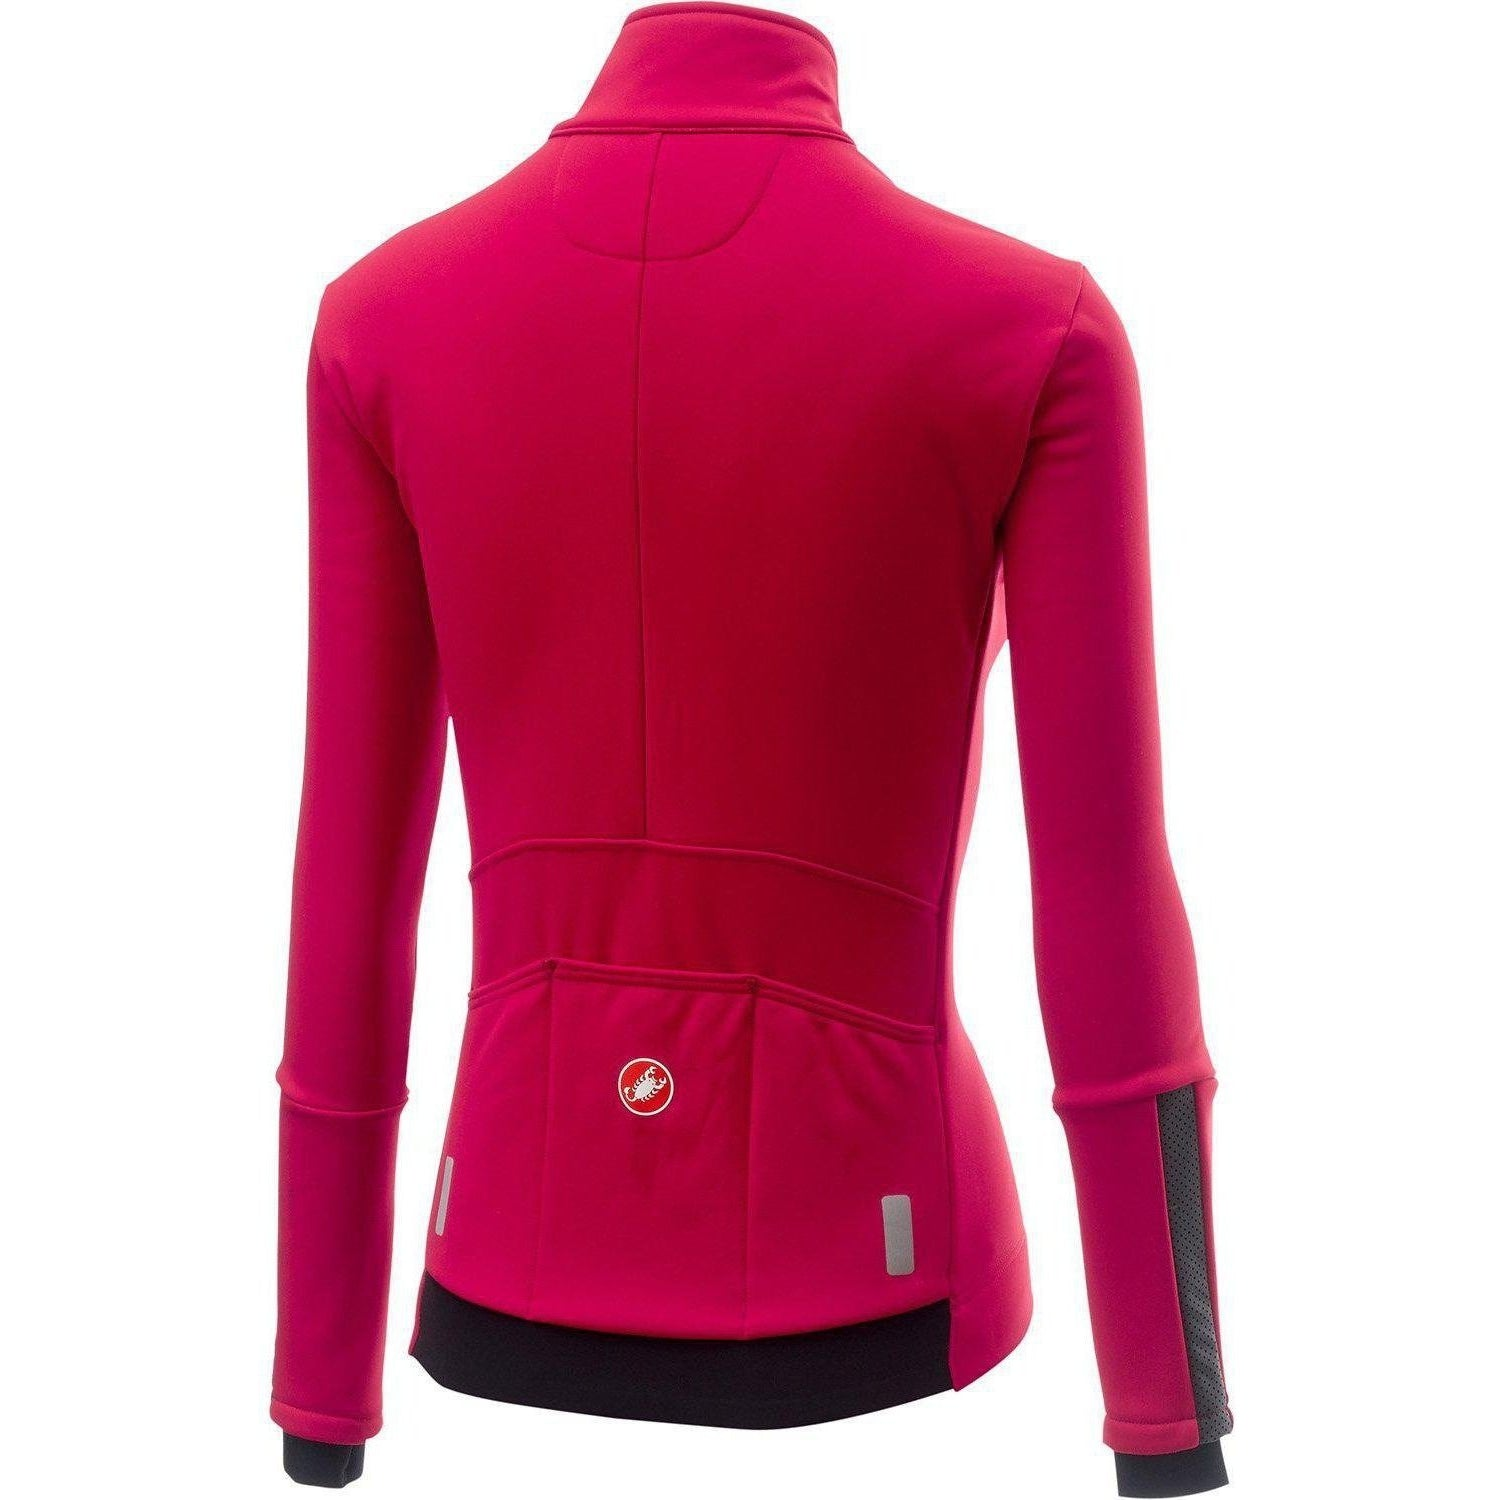 Castelli-Castelli Dinamica Women's Jacket--saddleback-elite-performance-cycling